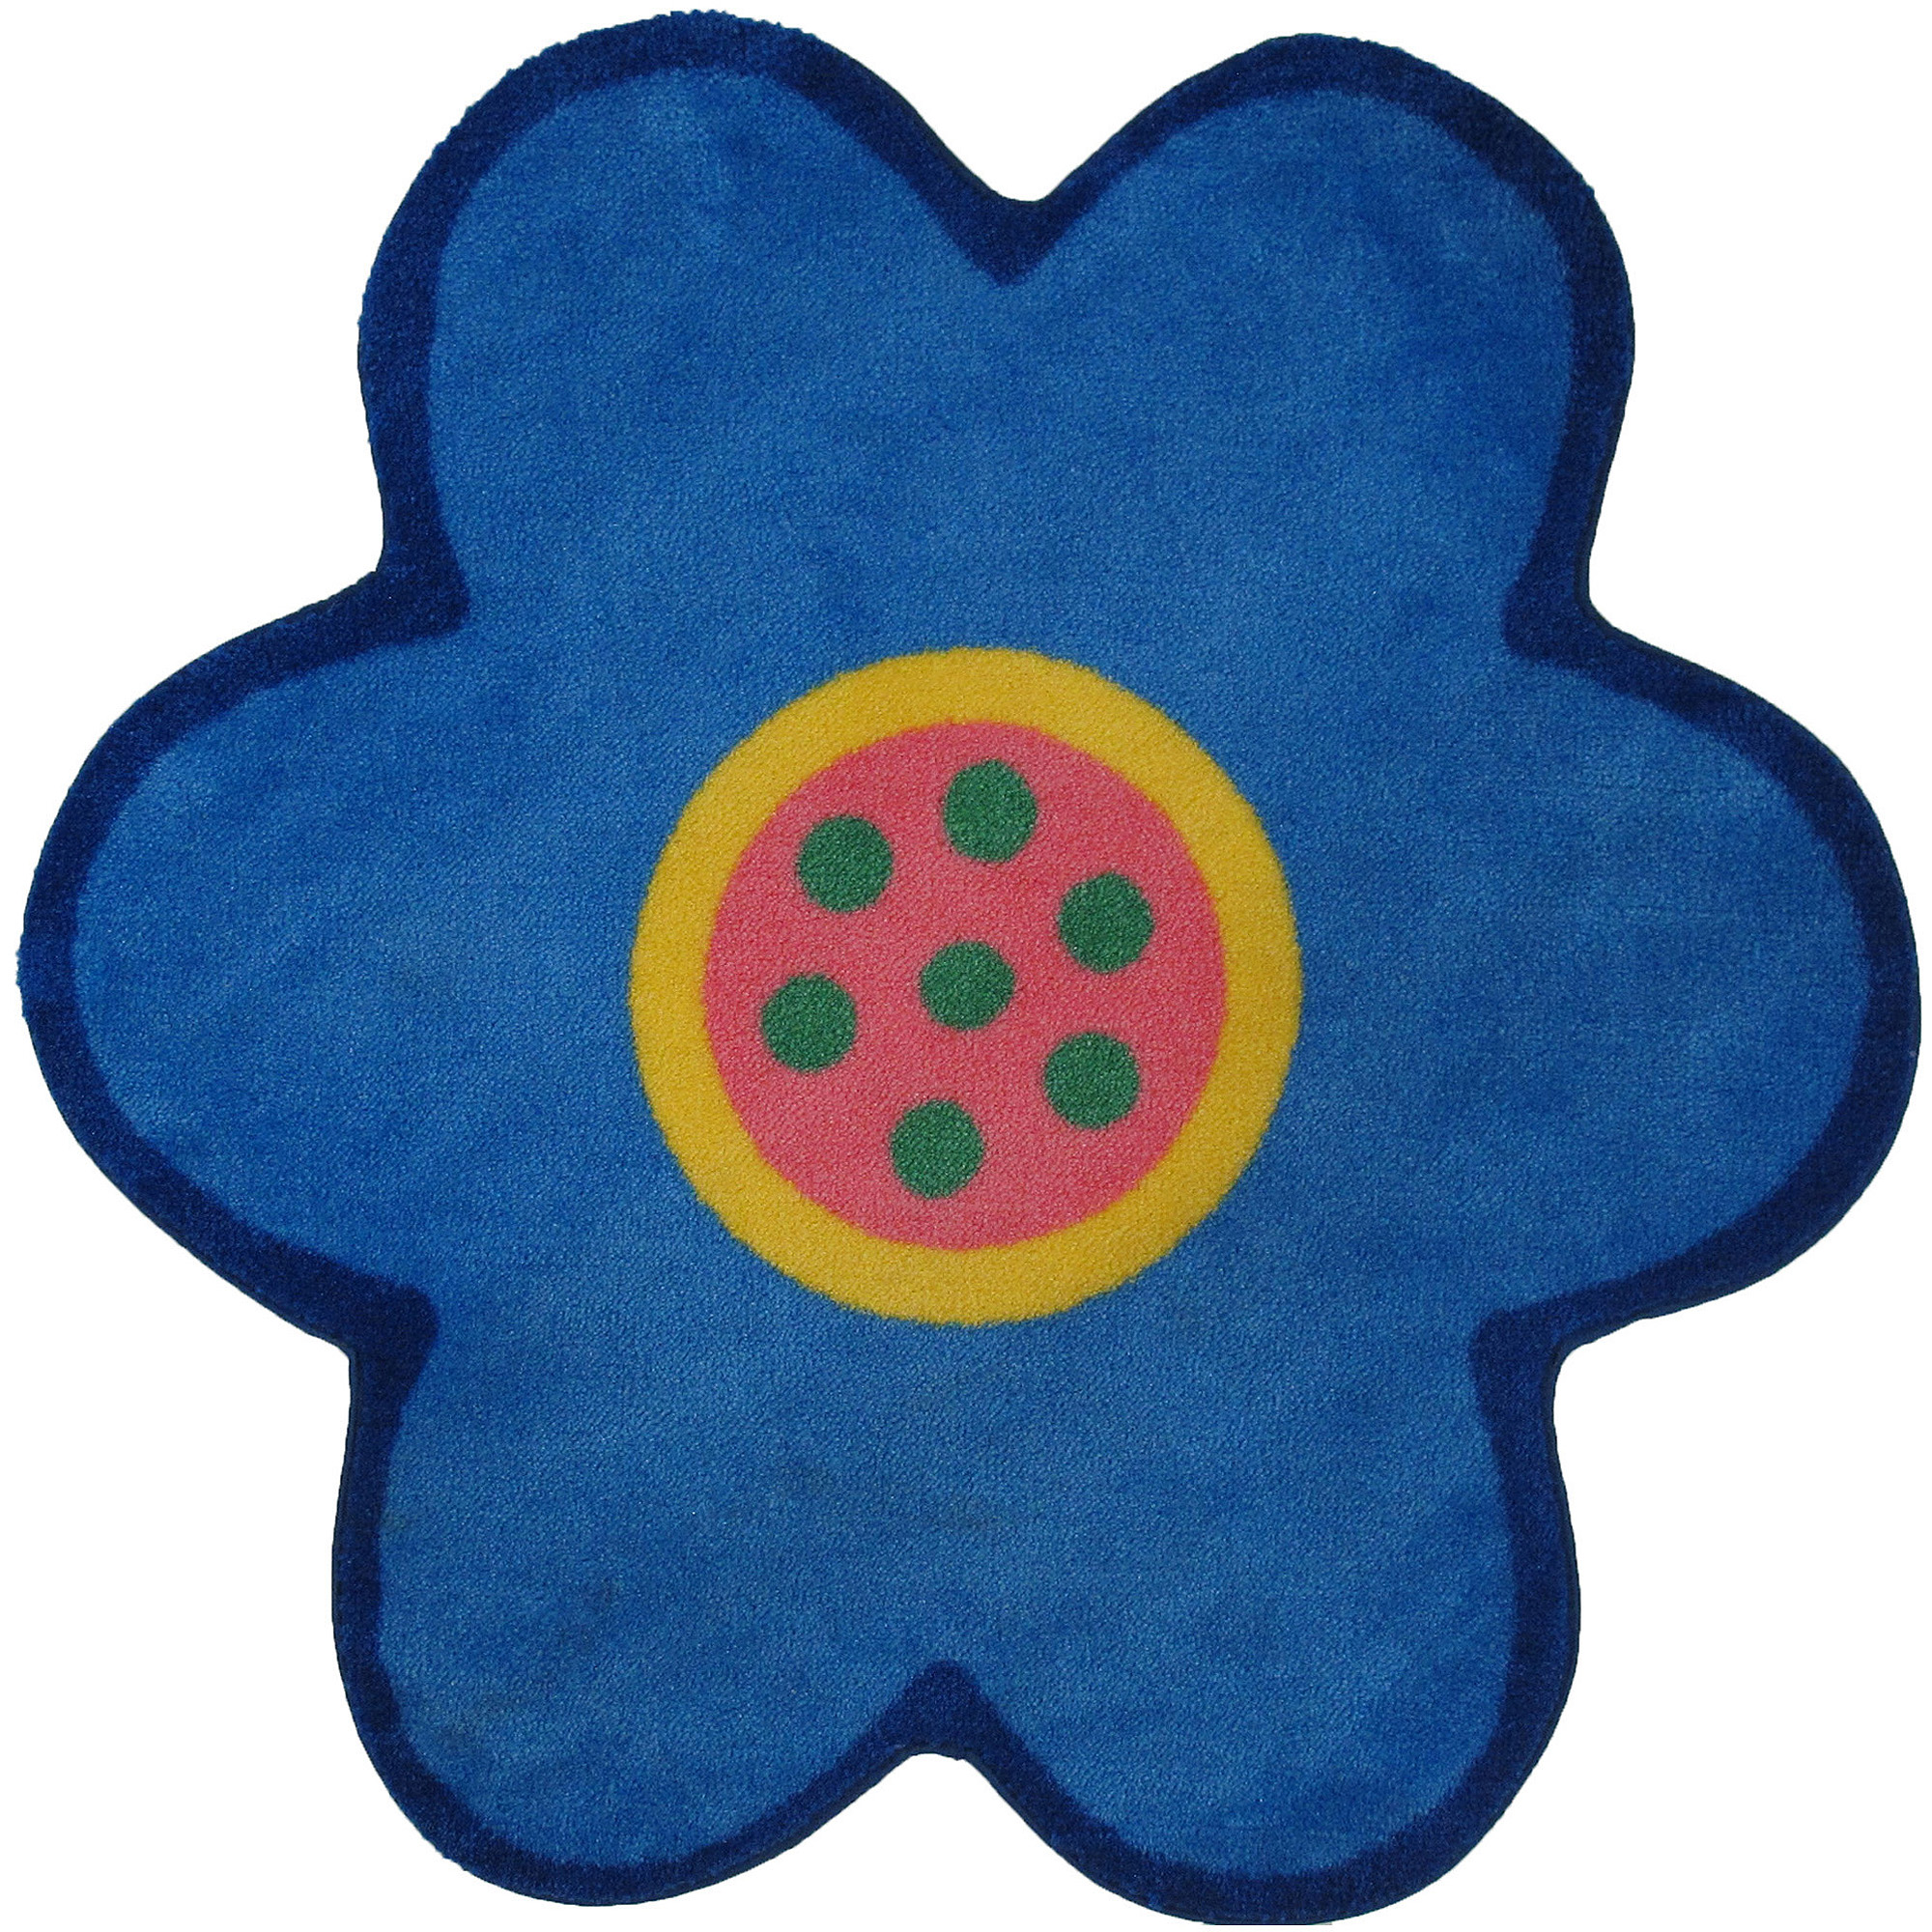 "Fun Rugs Poppy Light Blue 39"" x 39"" Rug"